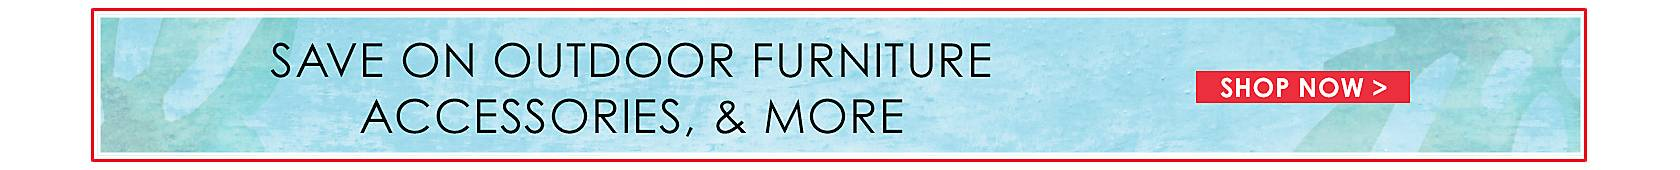 Save on Outdoor Furniture, Accessories, and More - Shop Now